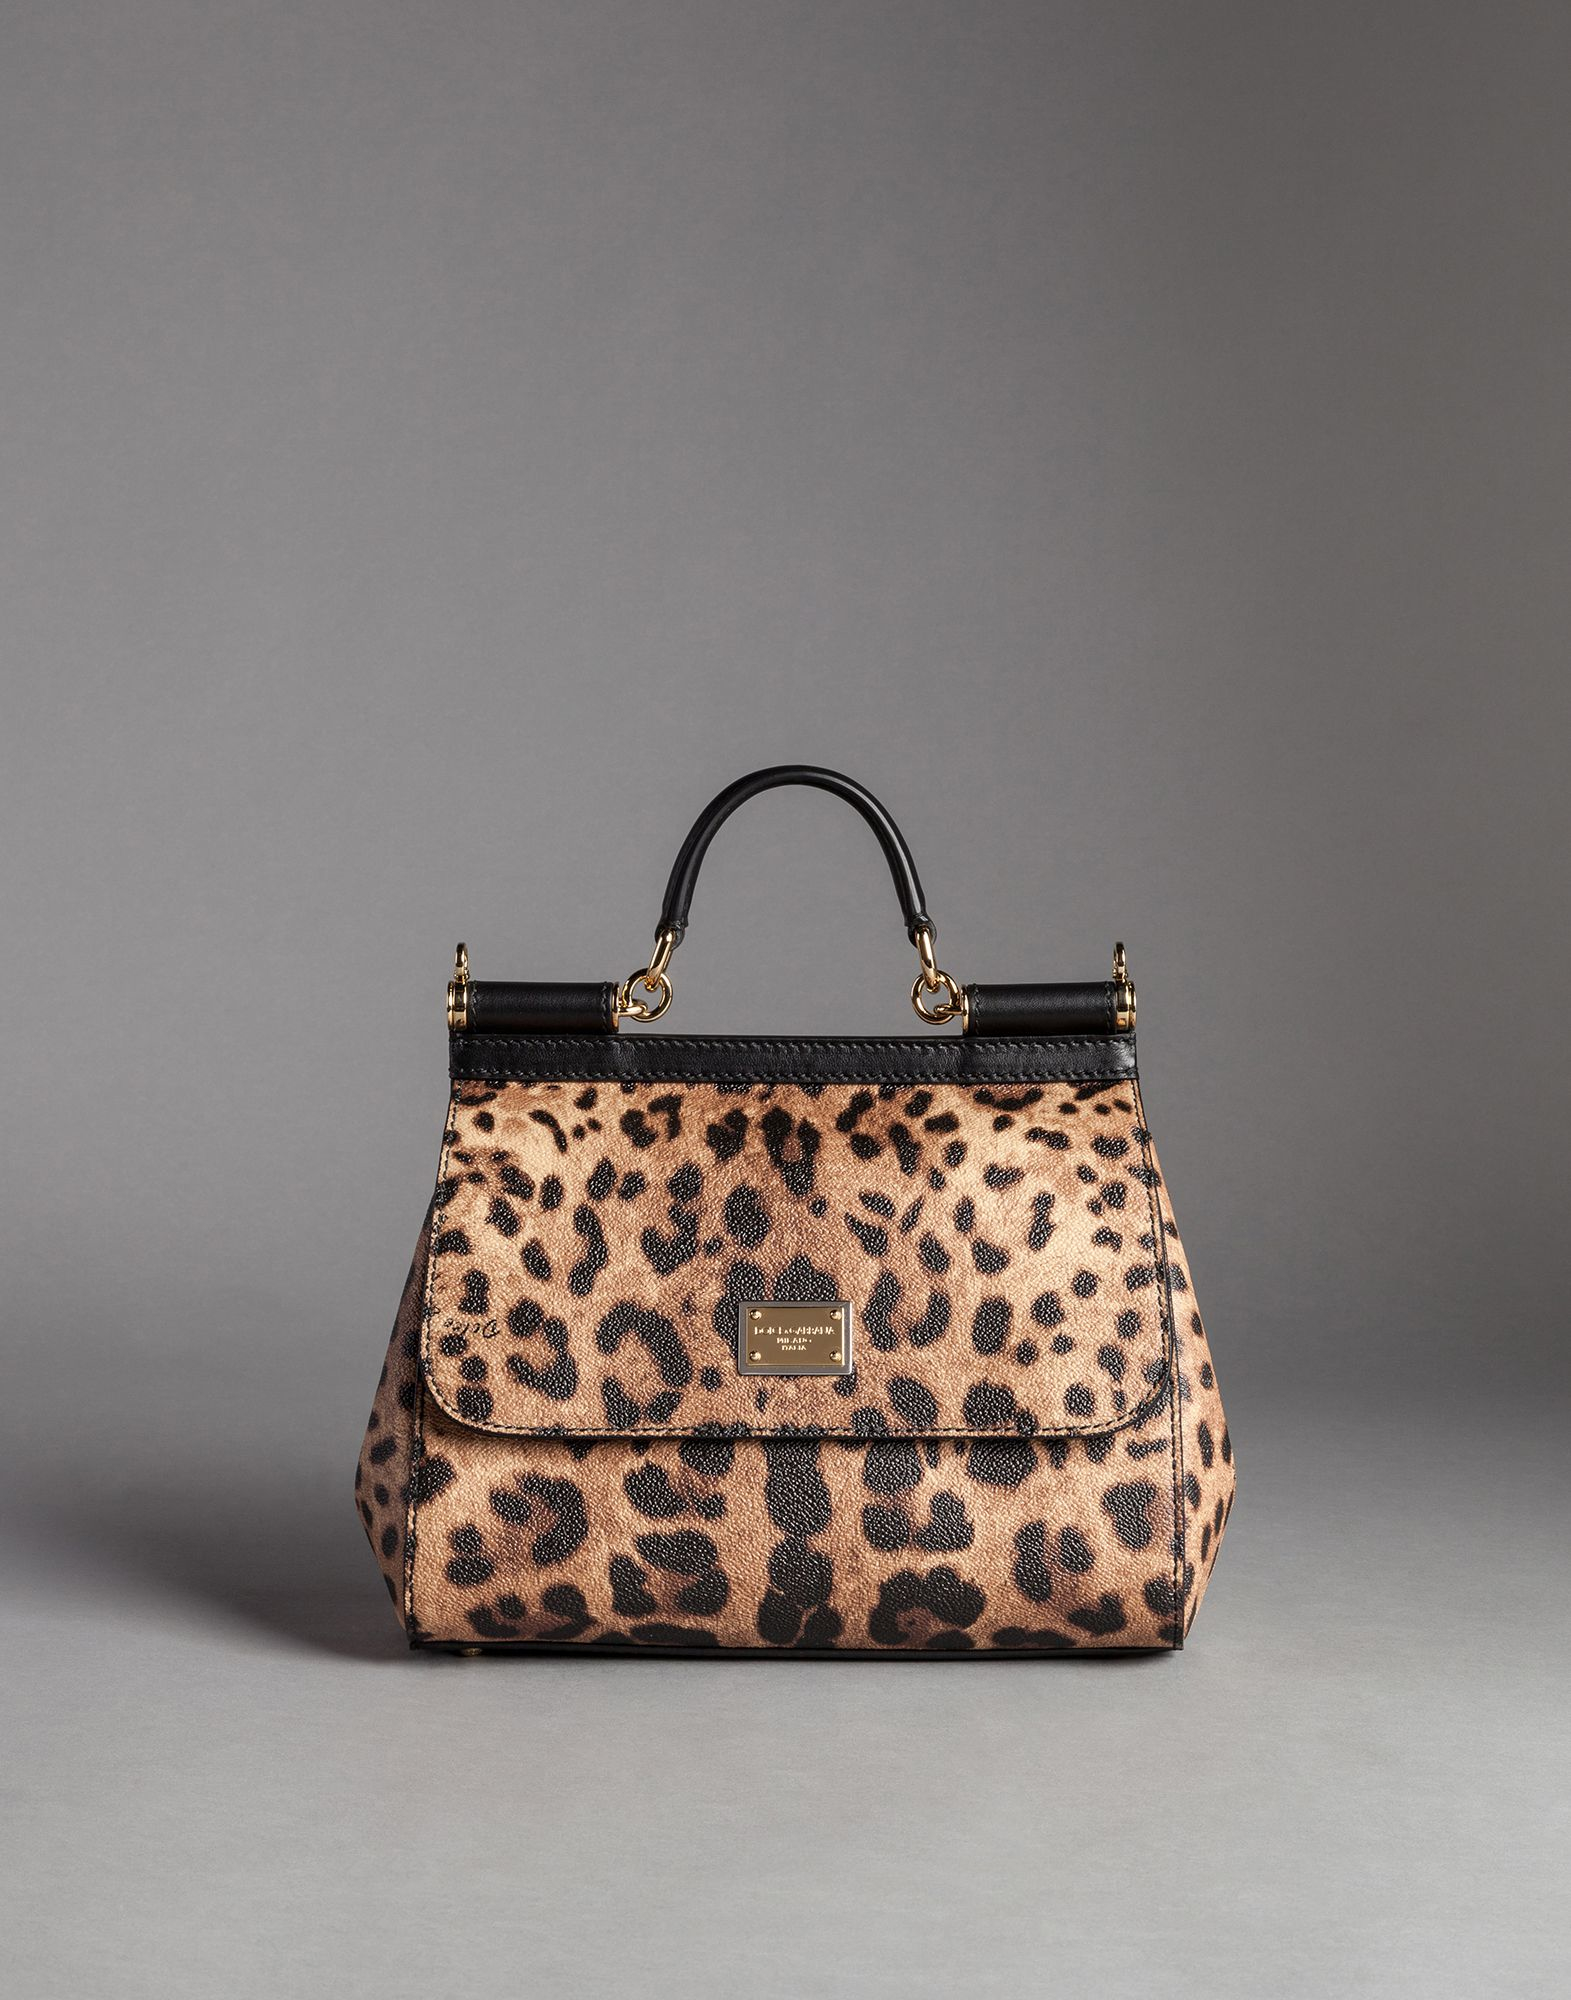 8073f8c68db Lyst - Dolce   Gabbana Medium Sicily Bag In Leopard Textured Leather ...